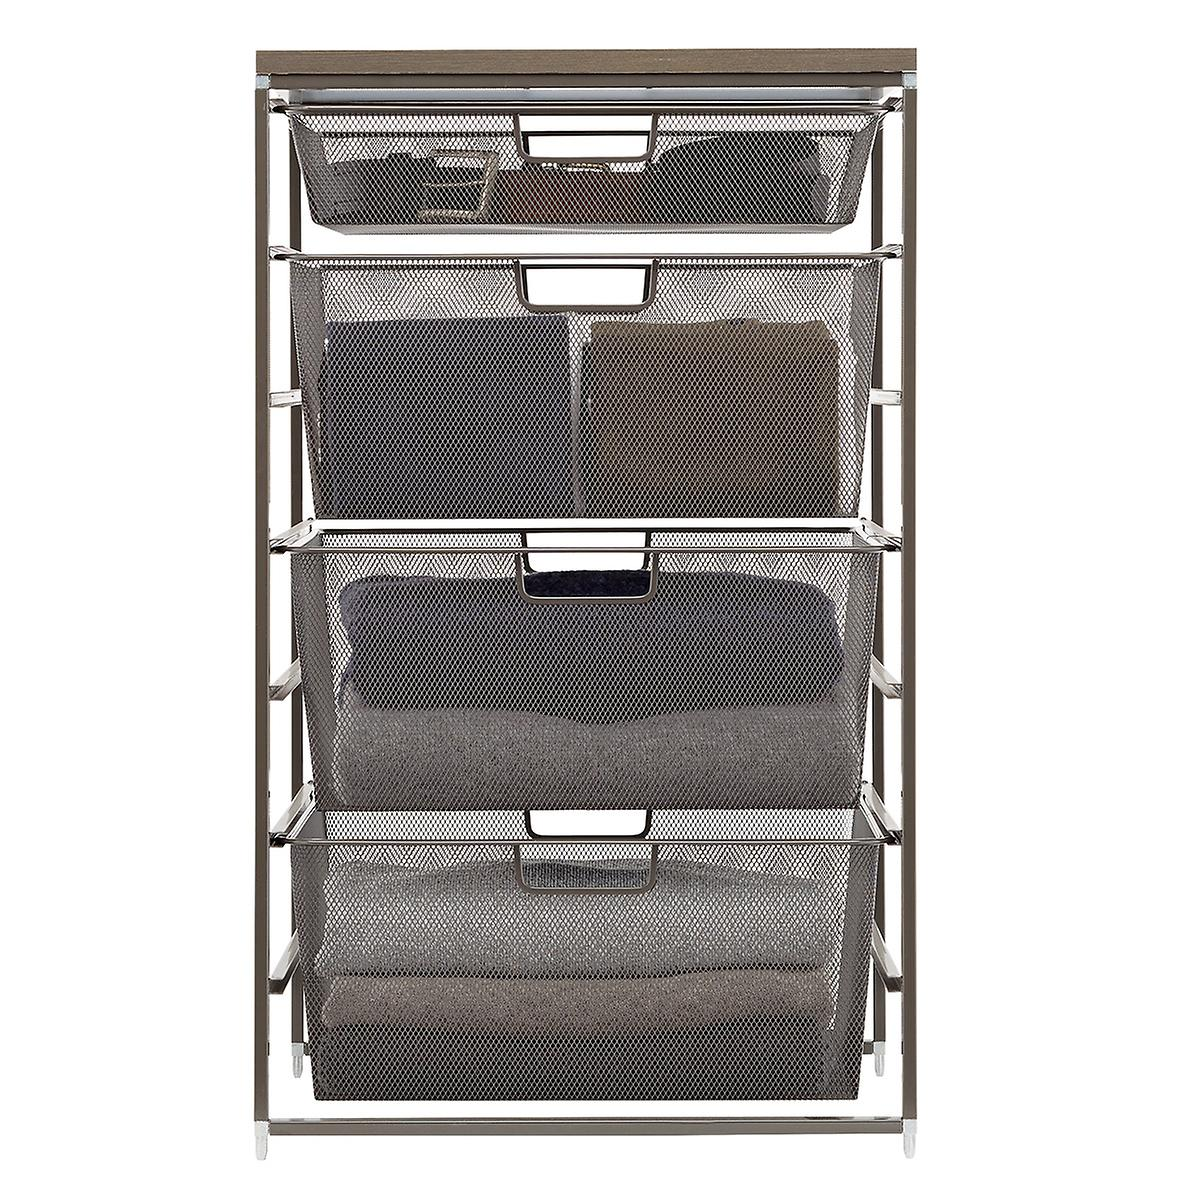 Graphite Elfa Mesh Closet Drawers